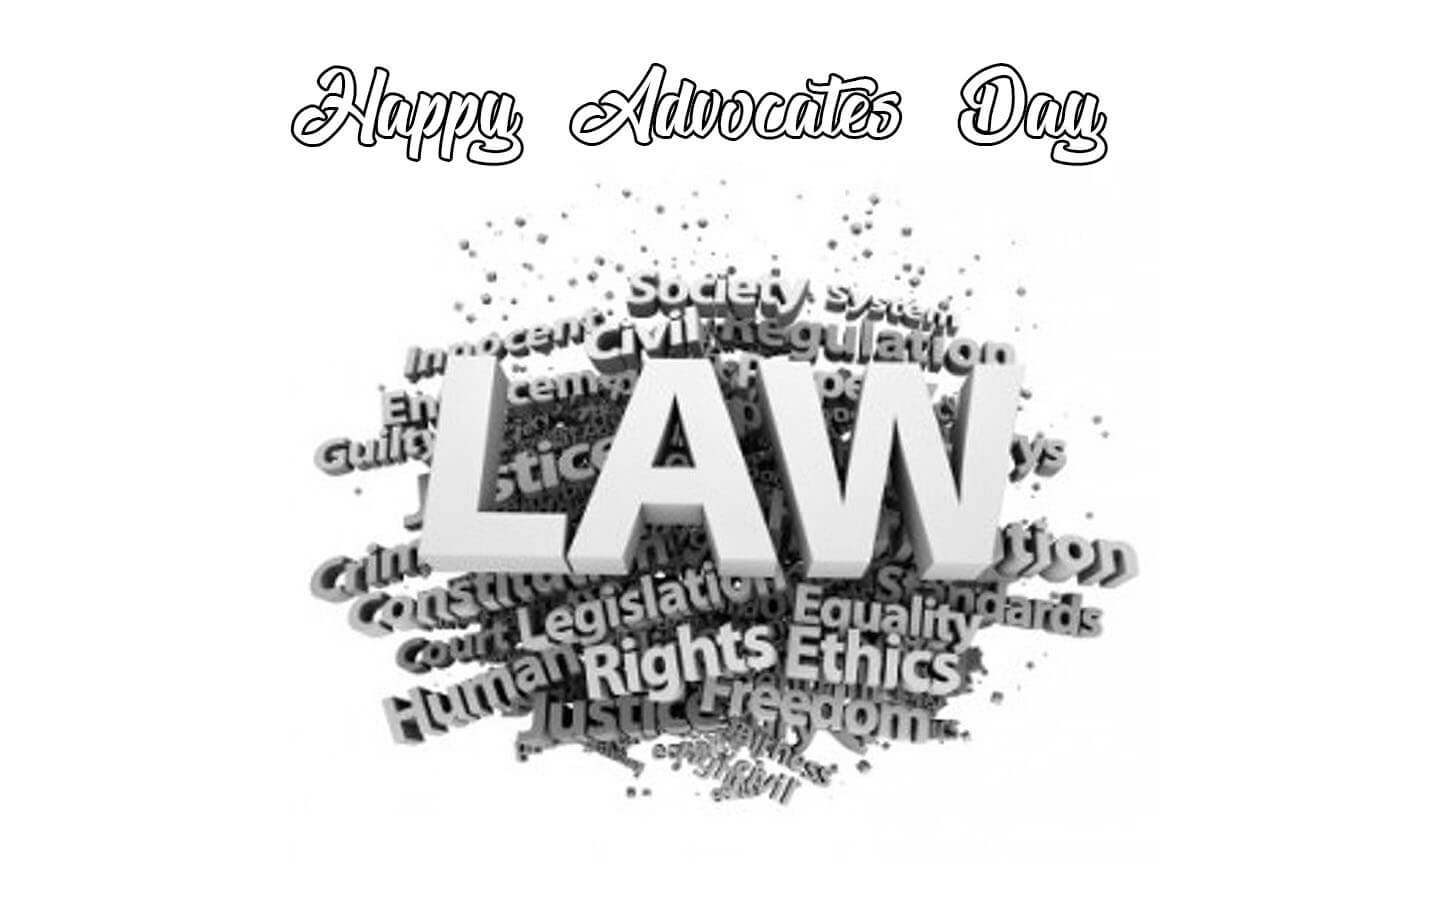 happy advocates day wishes greetings texts wallpaper